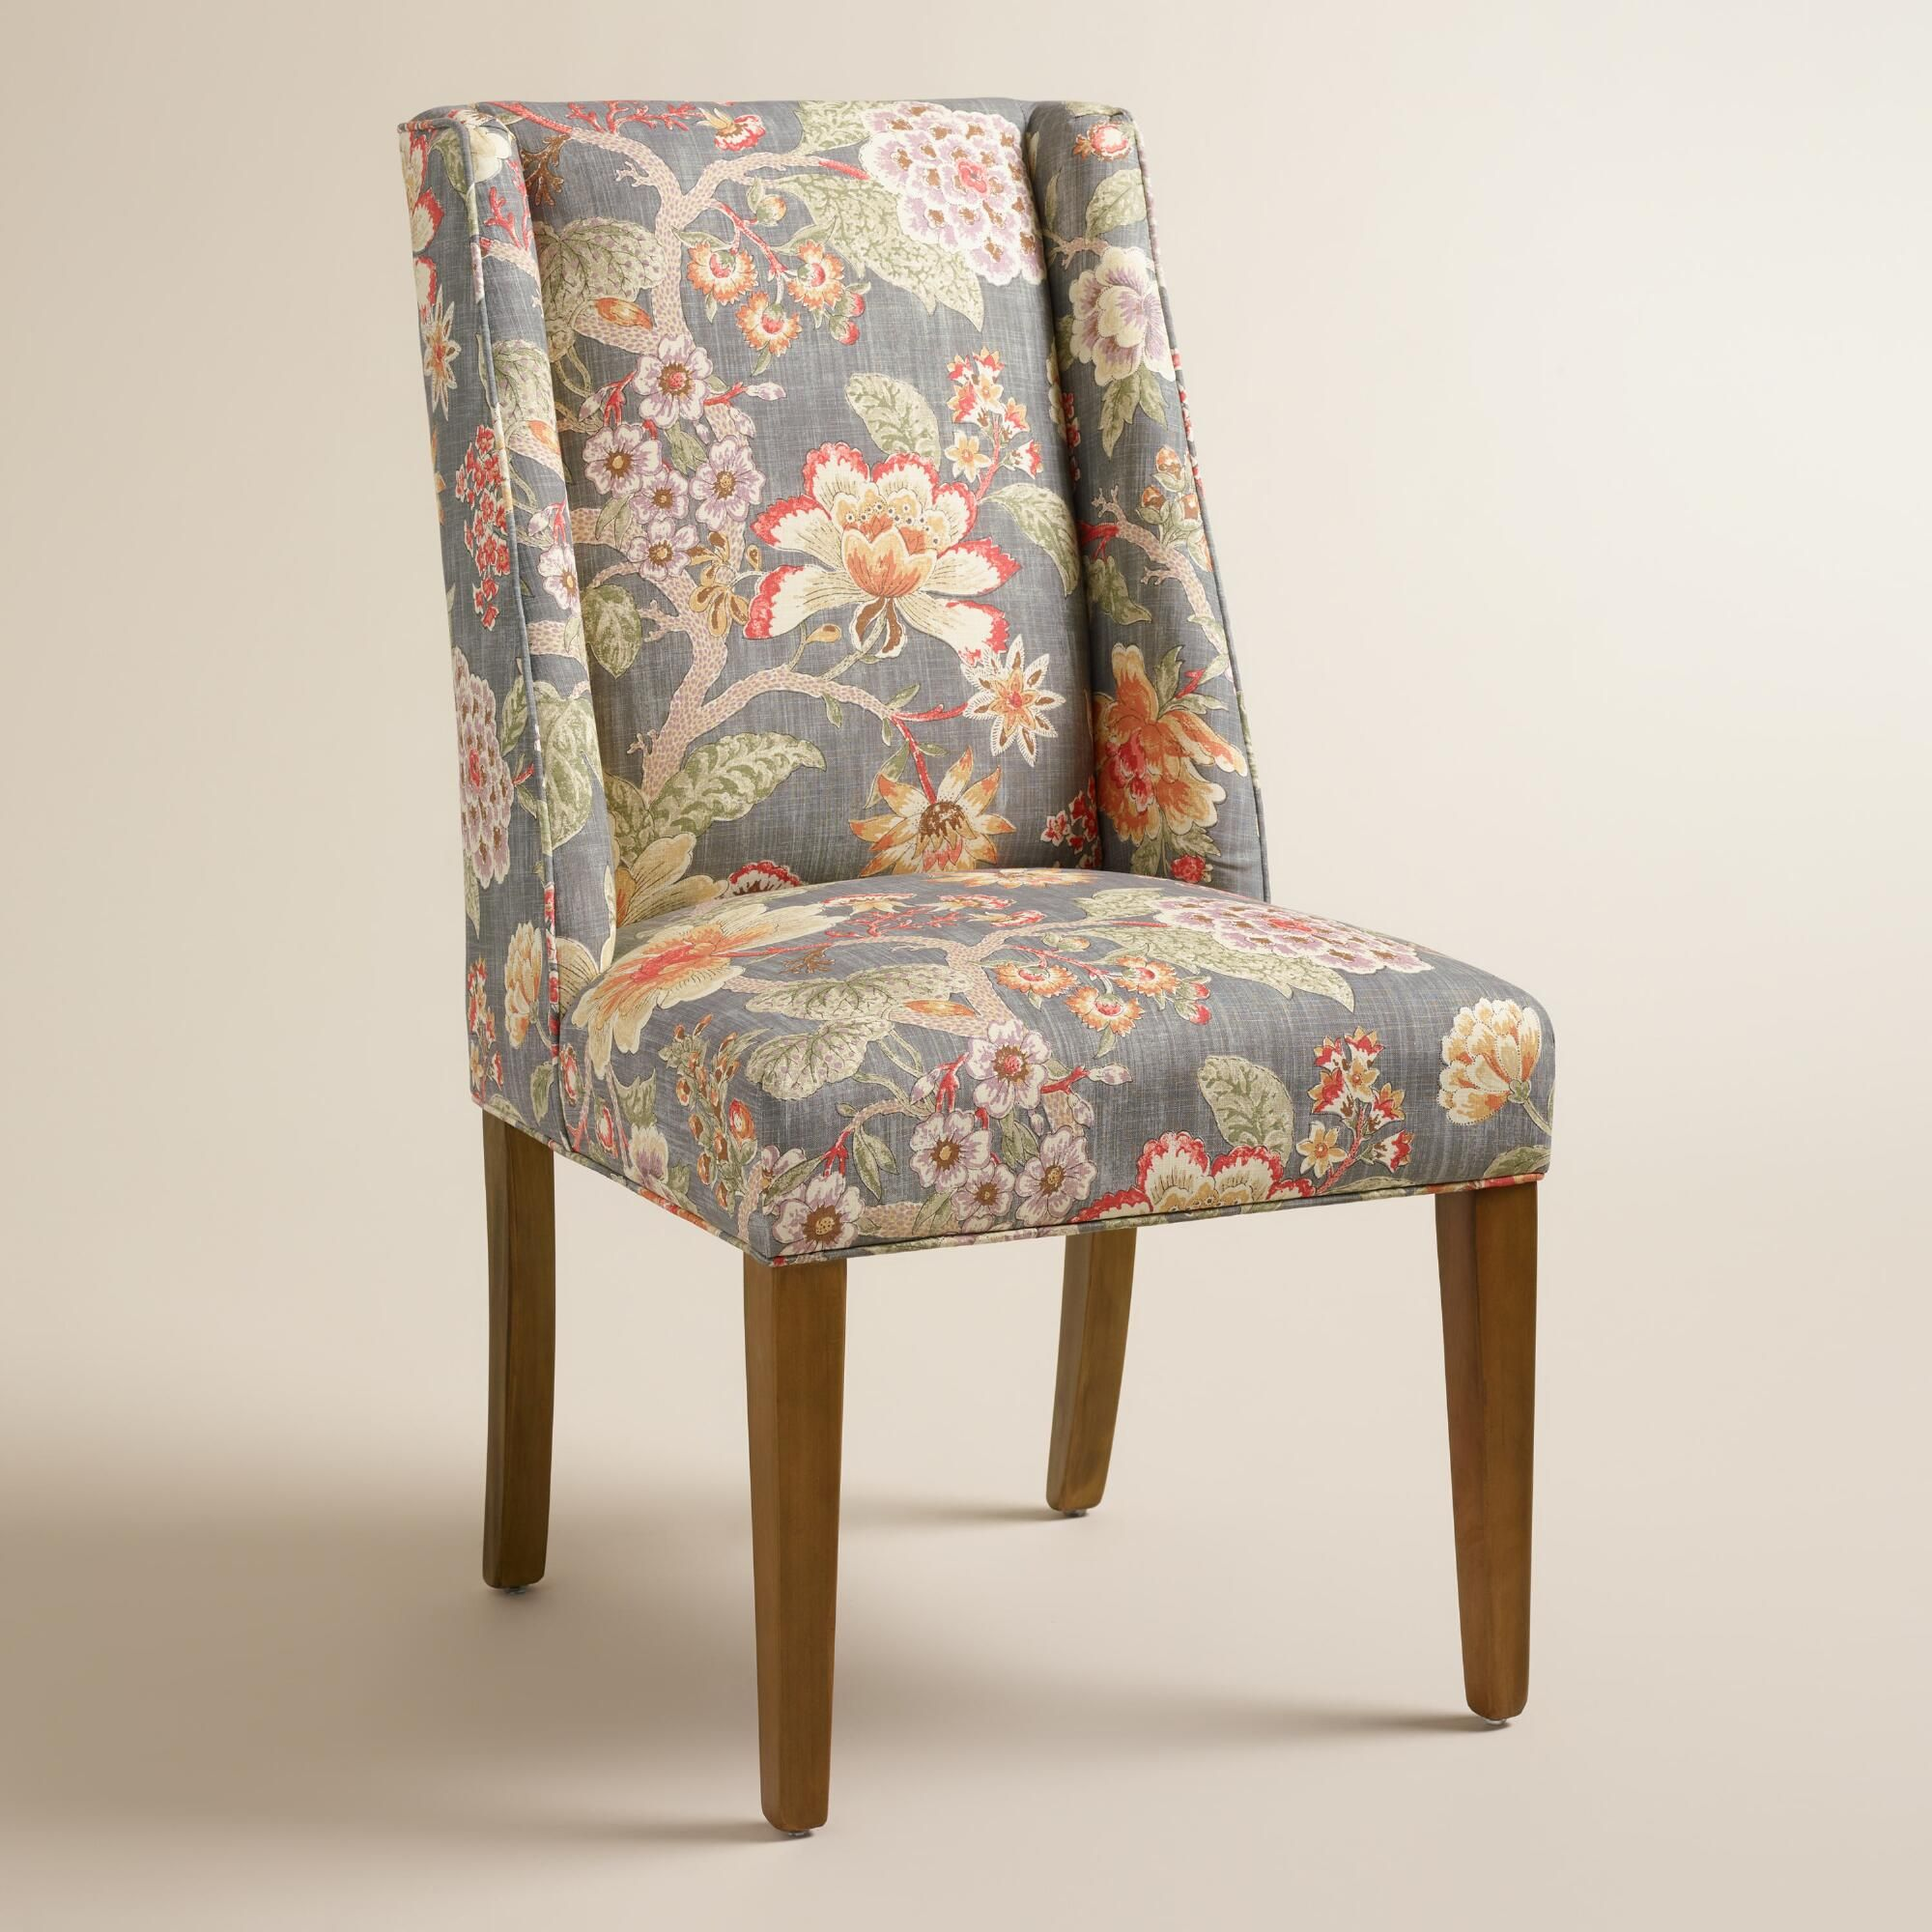 Floral Wingback Chair With A Warm Hued Floral Motif And Subtle Wingback Profile